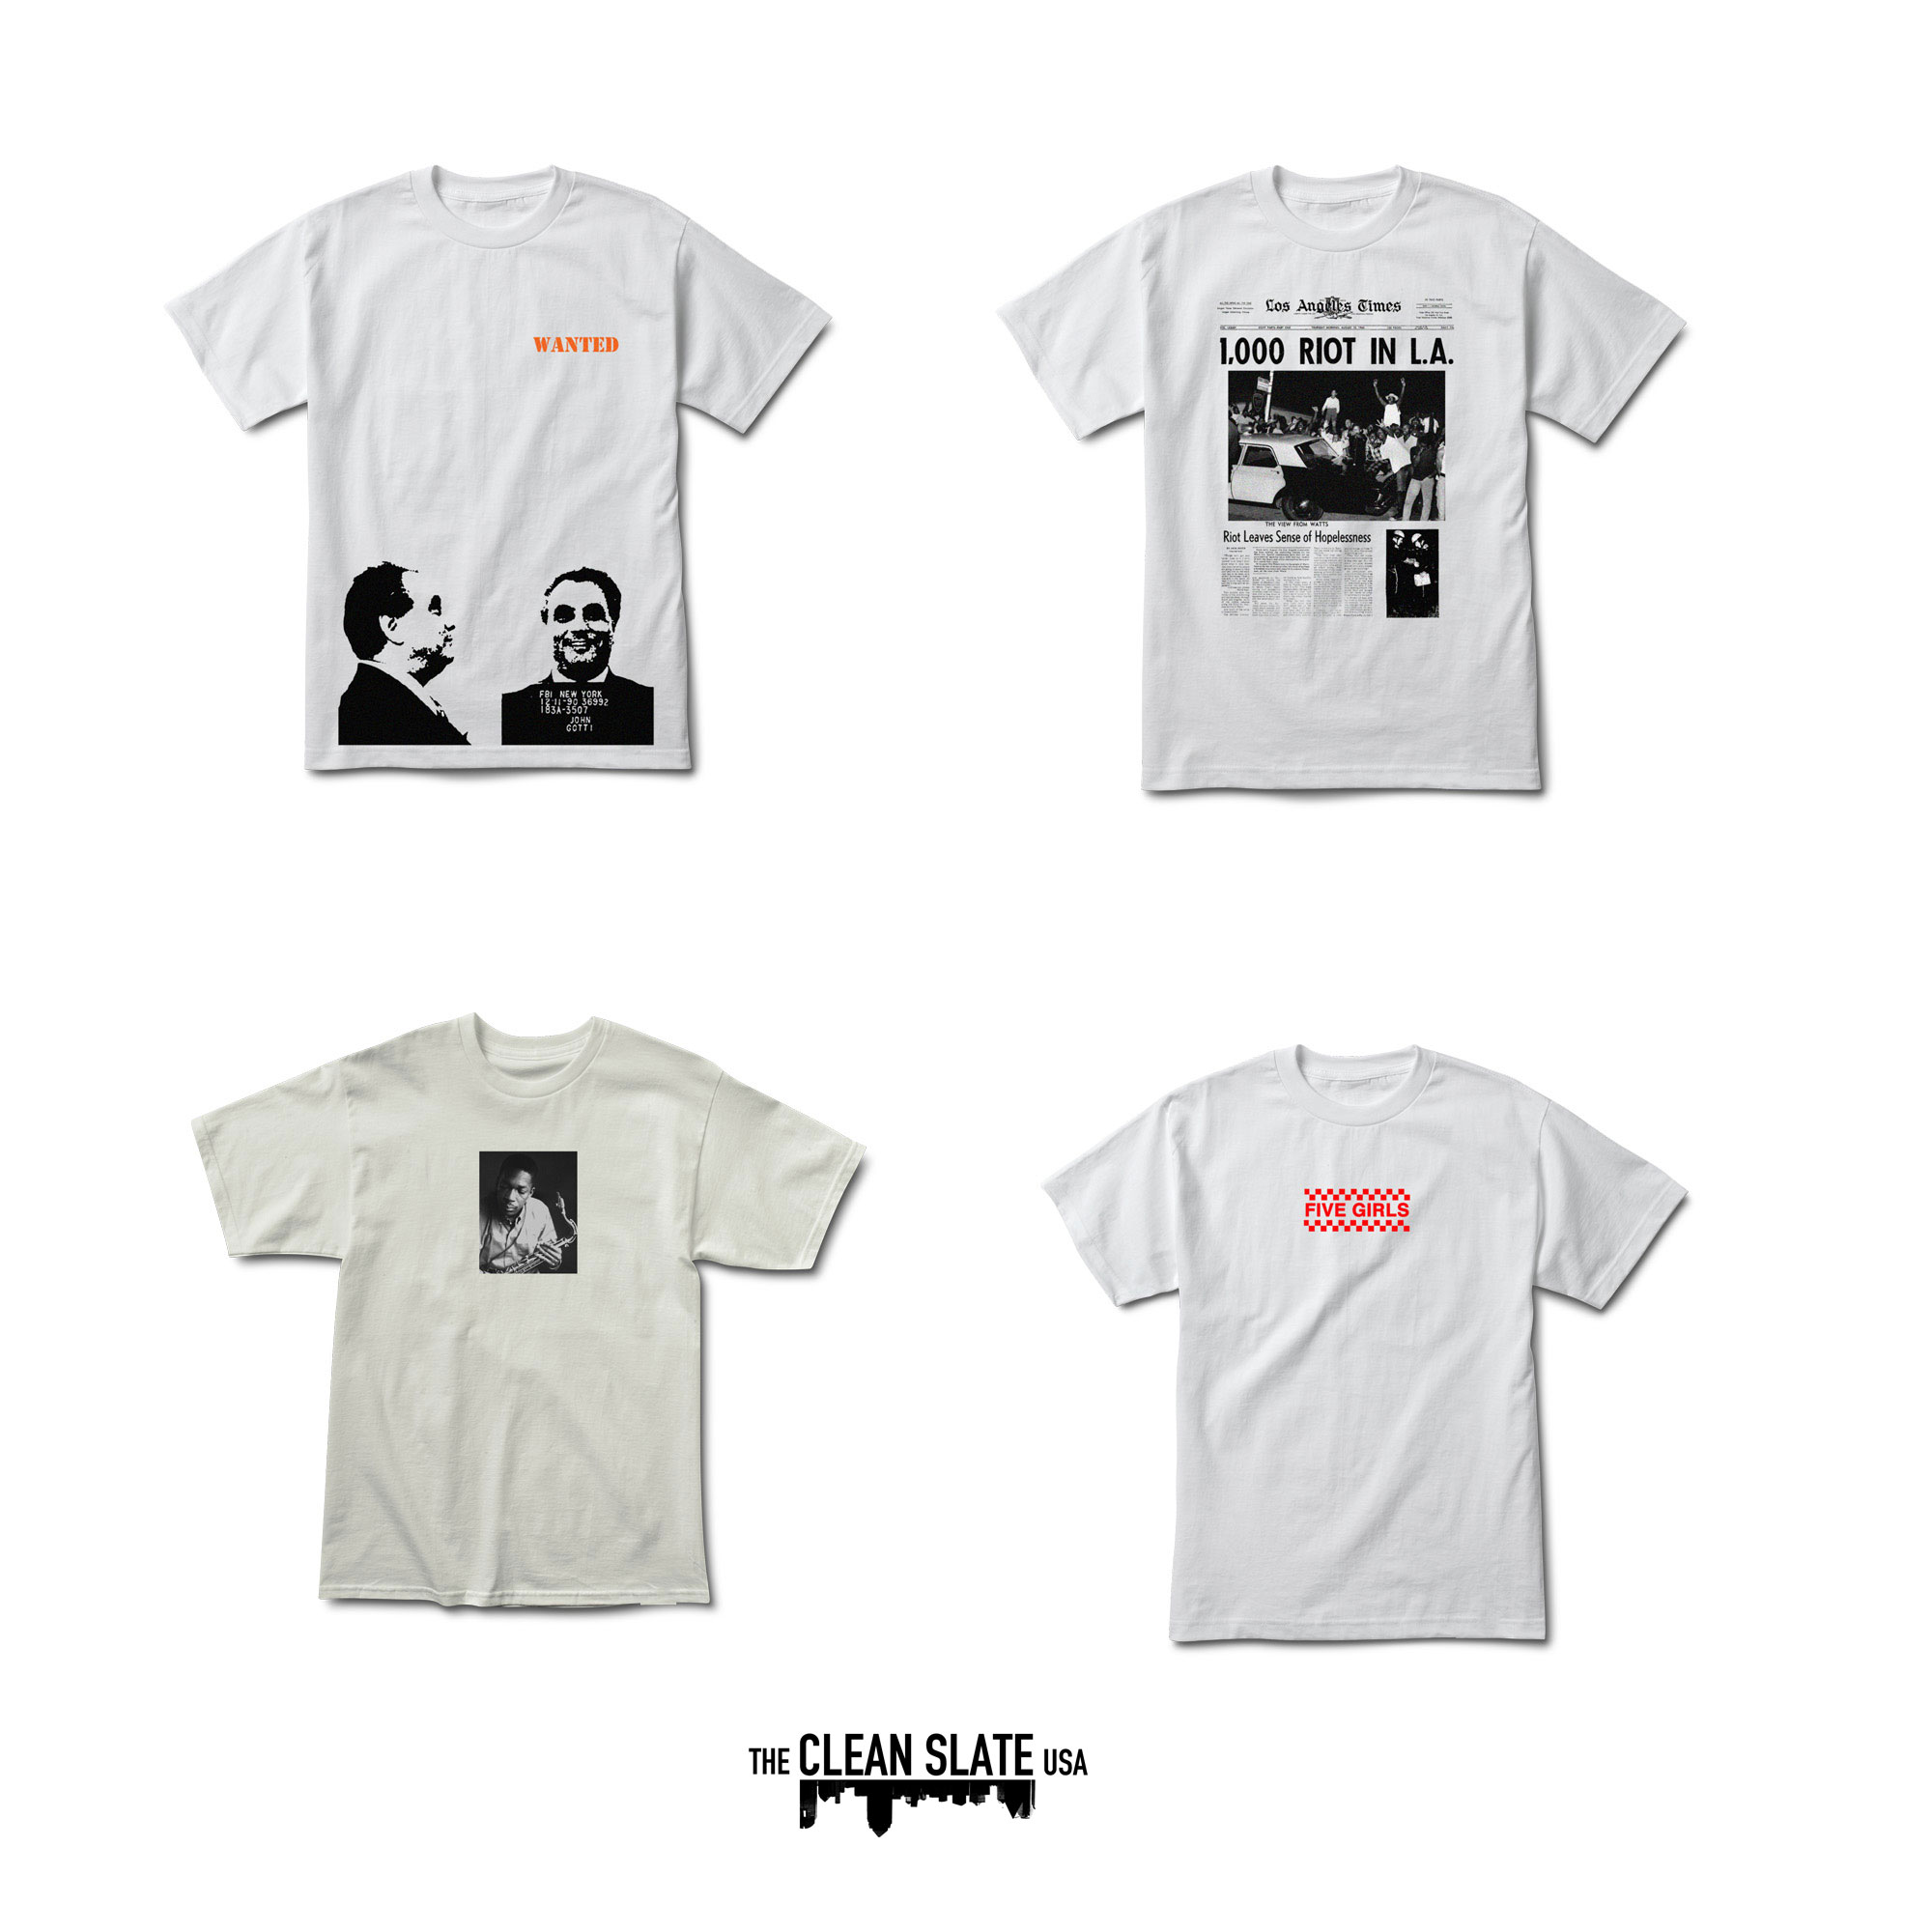 Today, The Clean Slate USA opens their online shop with 4 pieces to celebrate the Fall '16 Delivery 1. The four pieces include John Gotti ($30), 1,000 Riot in L.A. ($28), John Coltrane ($27), and the beloved Five Girls ($28). This is the first release under TCSUSA and we are thrilled for everyone to see what's in store for the brand. Thank you for the continued support and we look forward to providing what's fresh.  Happy Halloween!  - TCSUSA